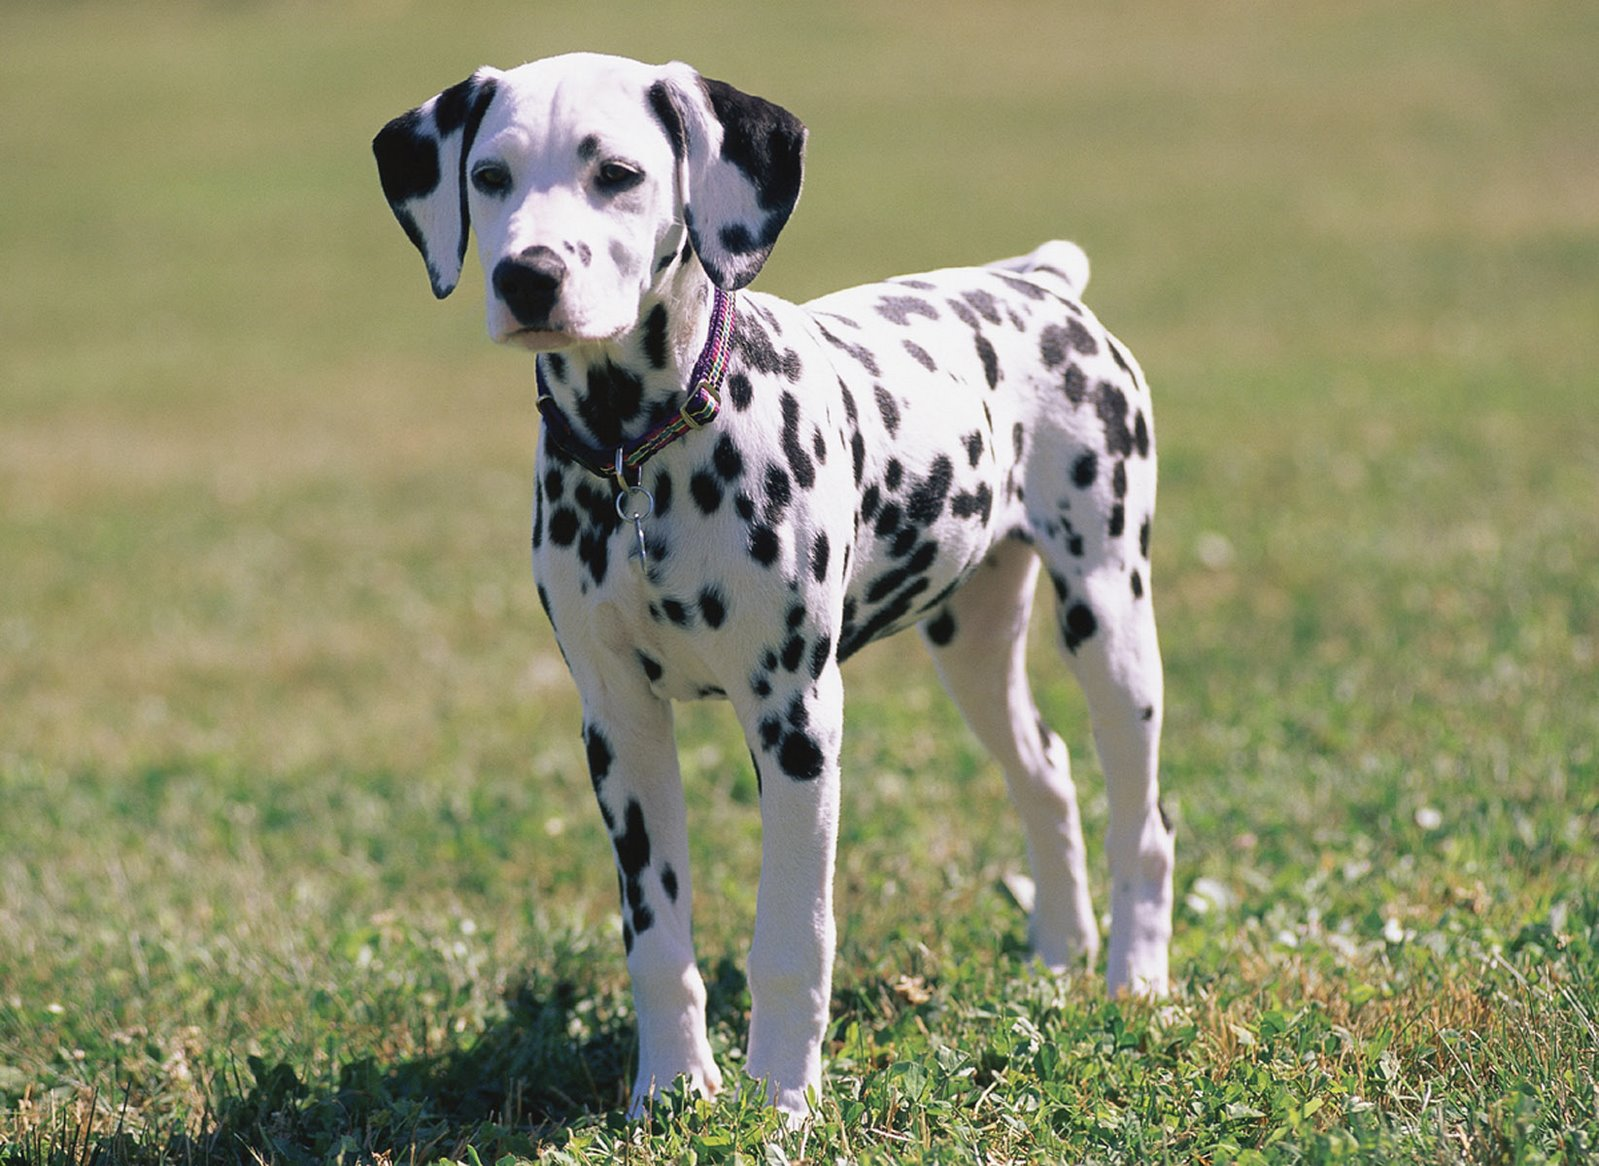 Dalmatian dog in the grass wallpaper